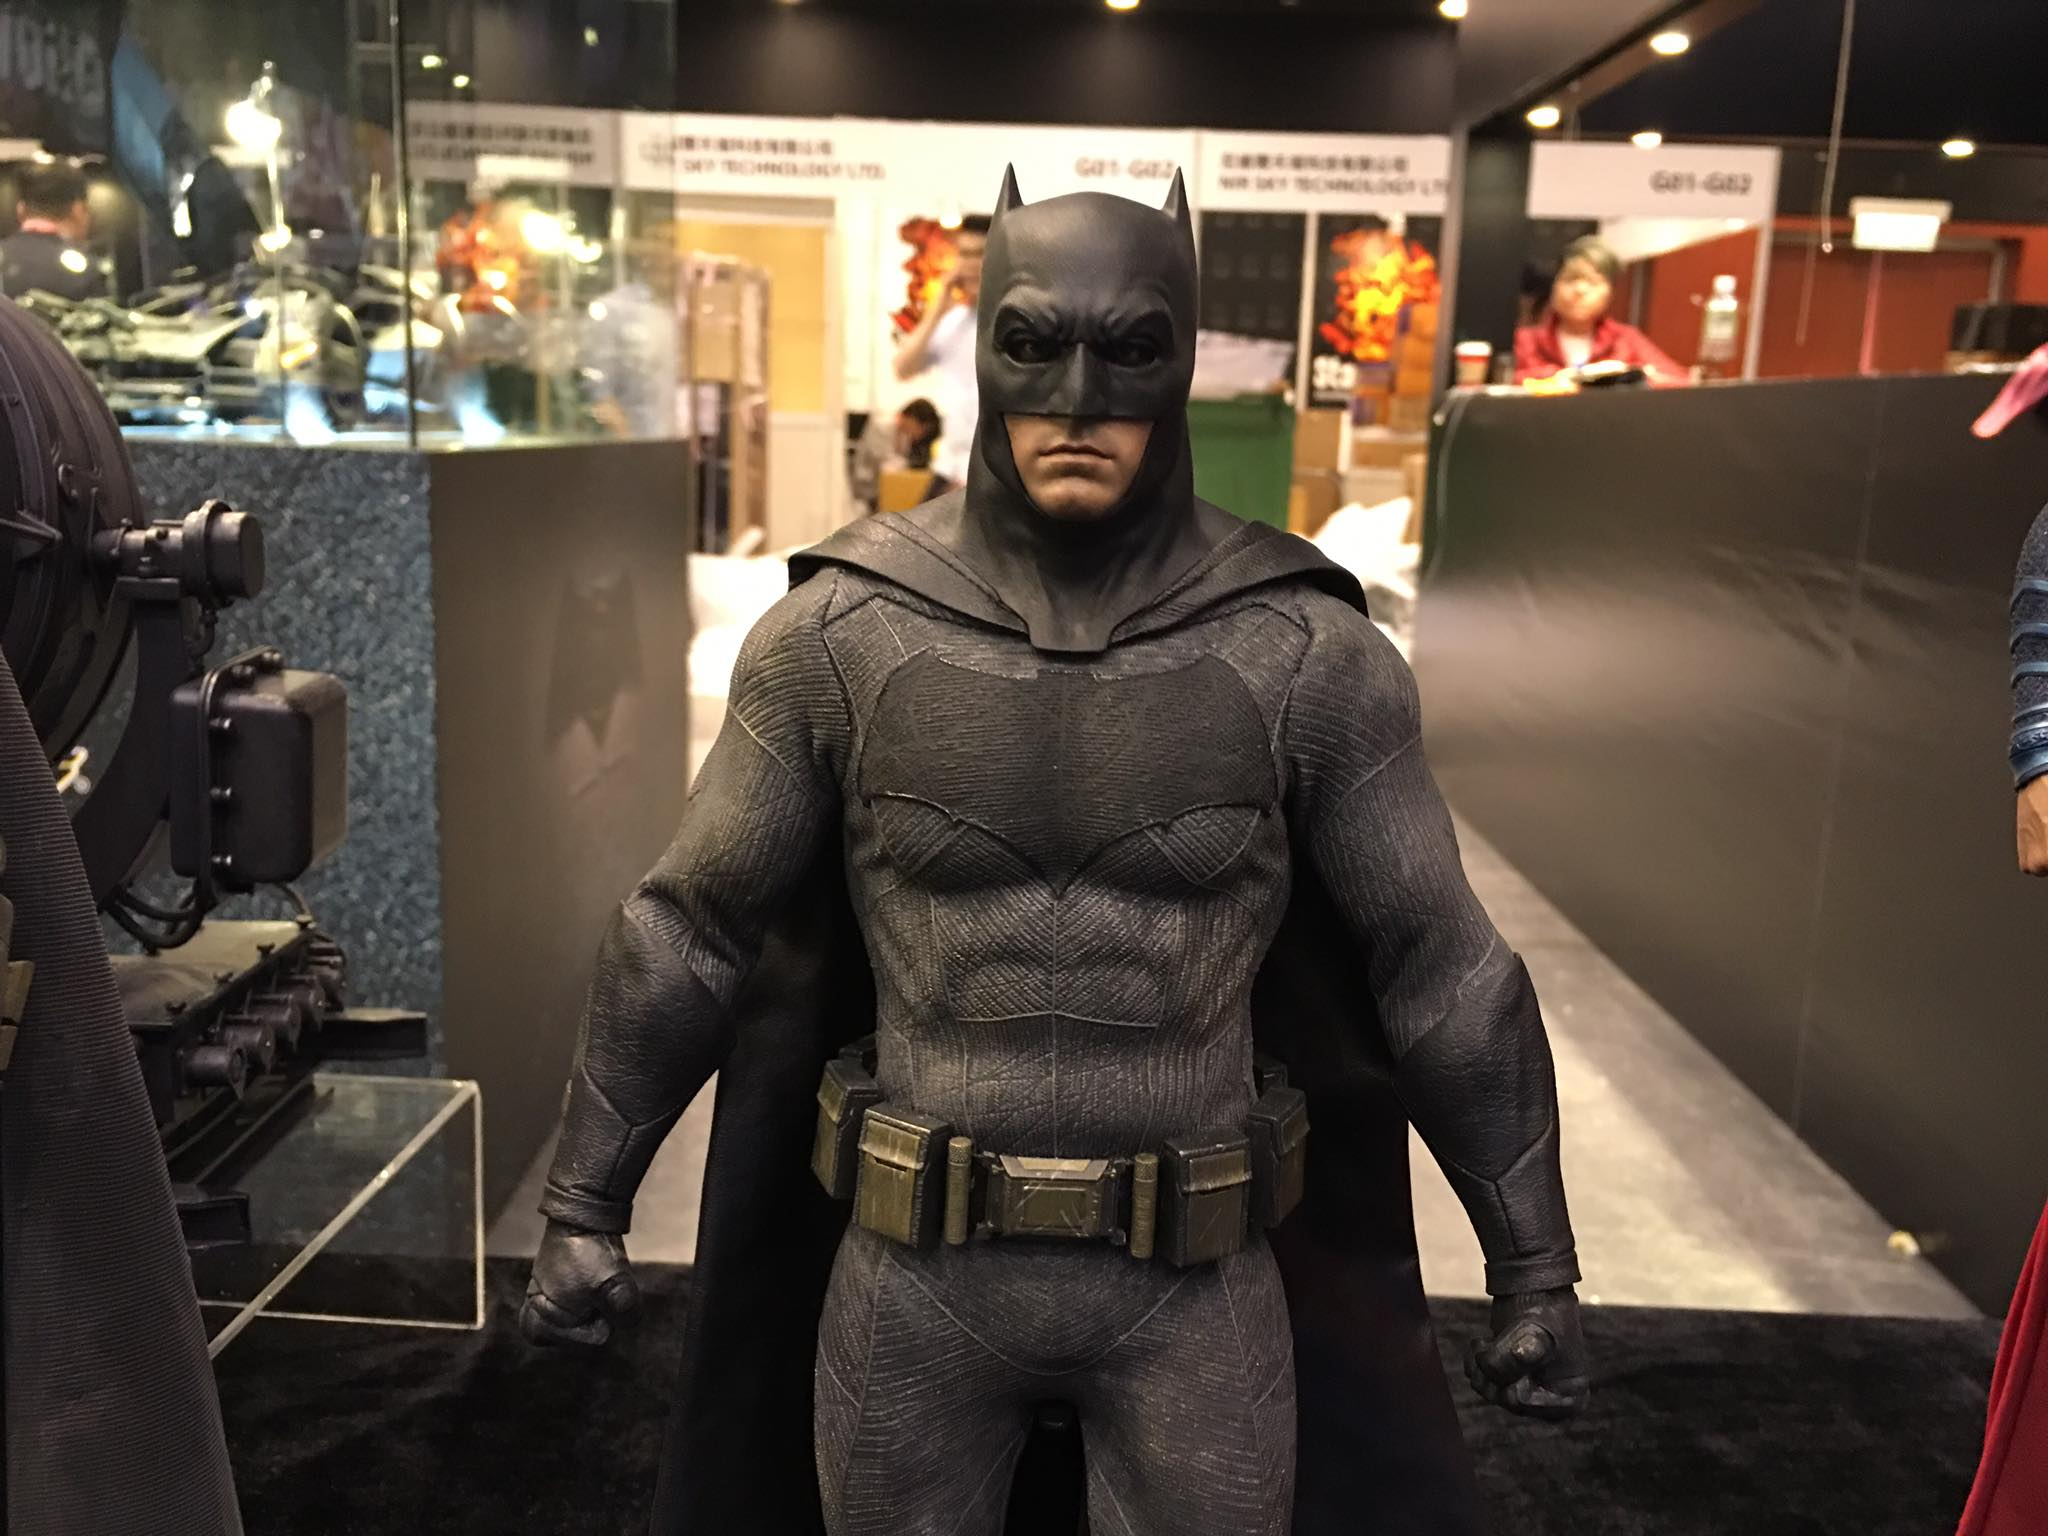 TS15-Hot-Toys-Batman-v-Superman-002.jpg